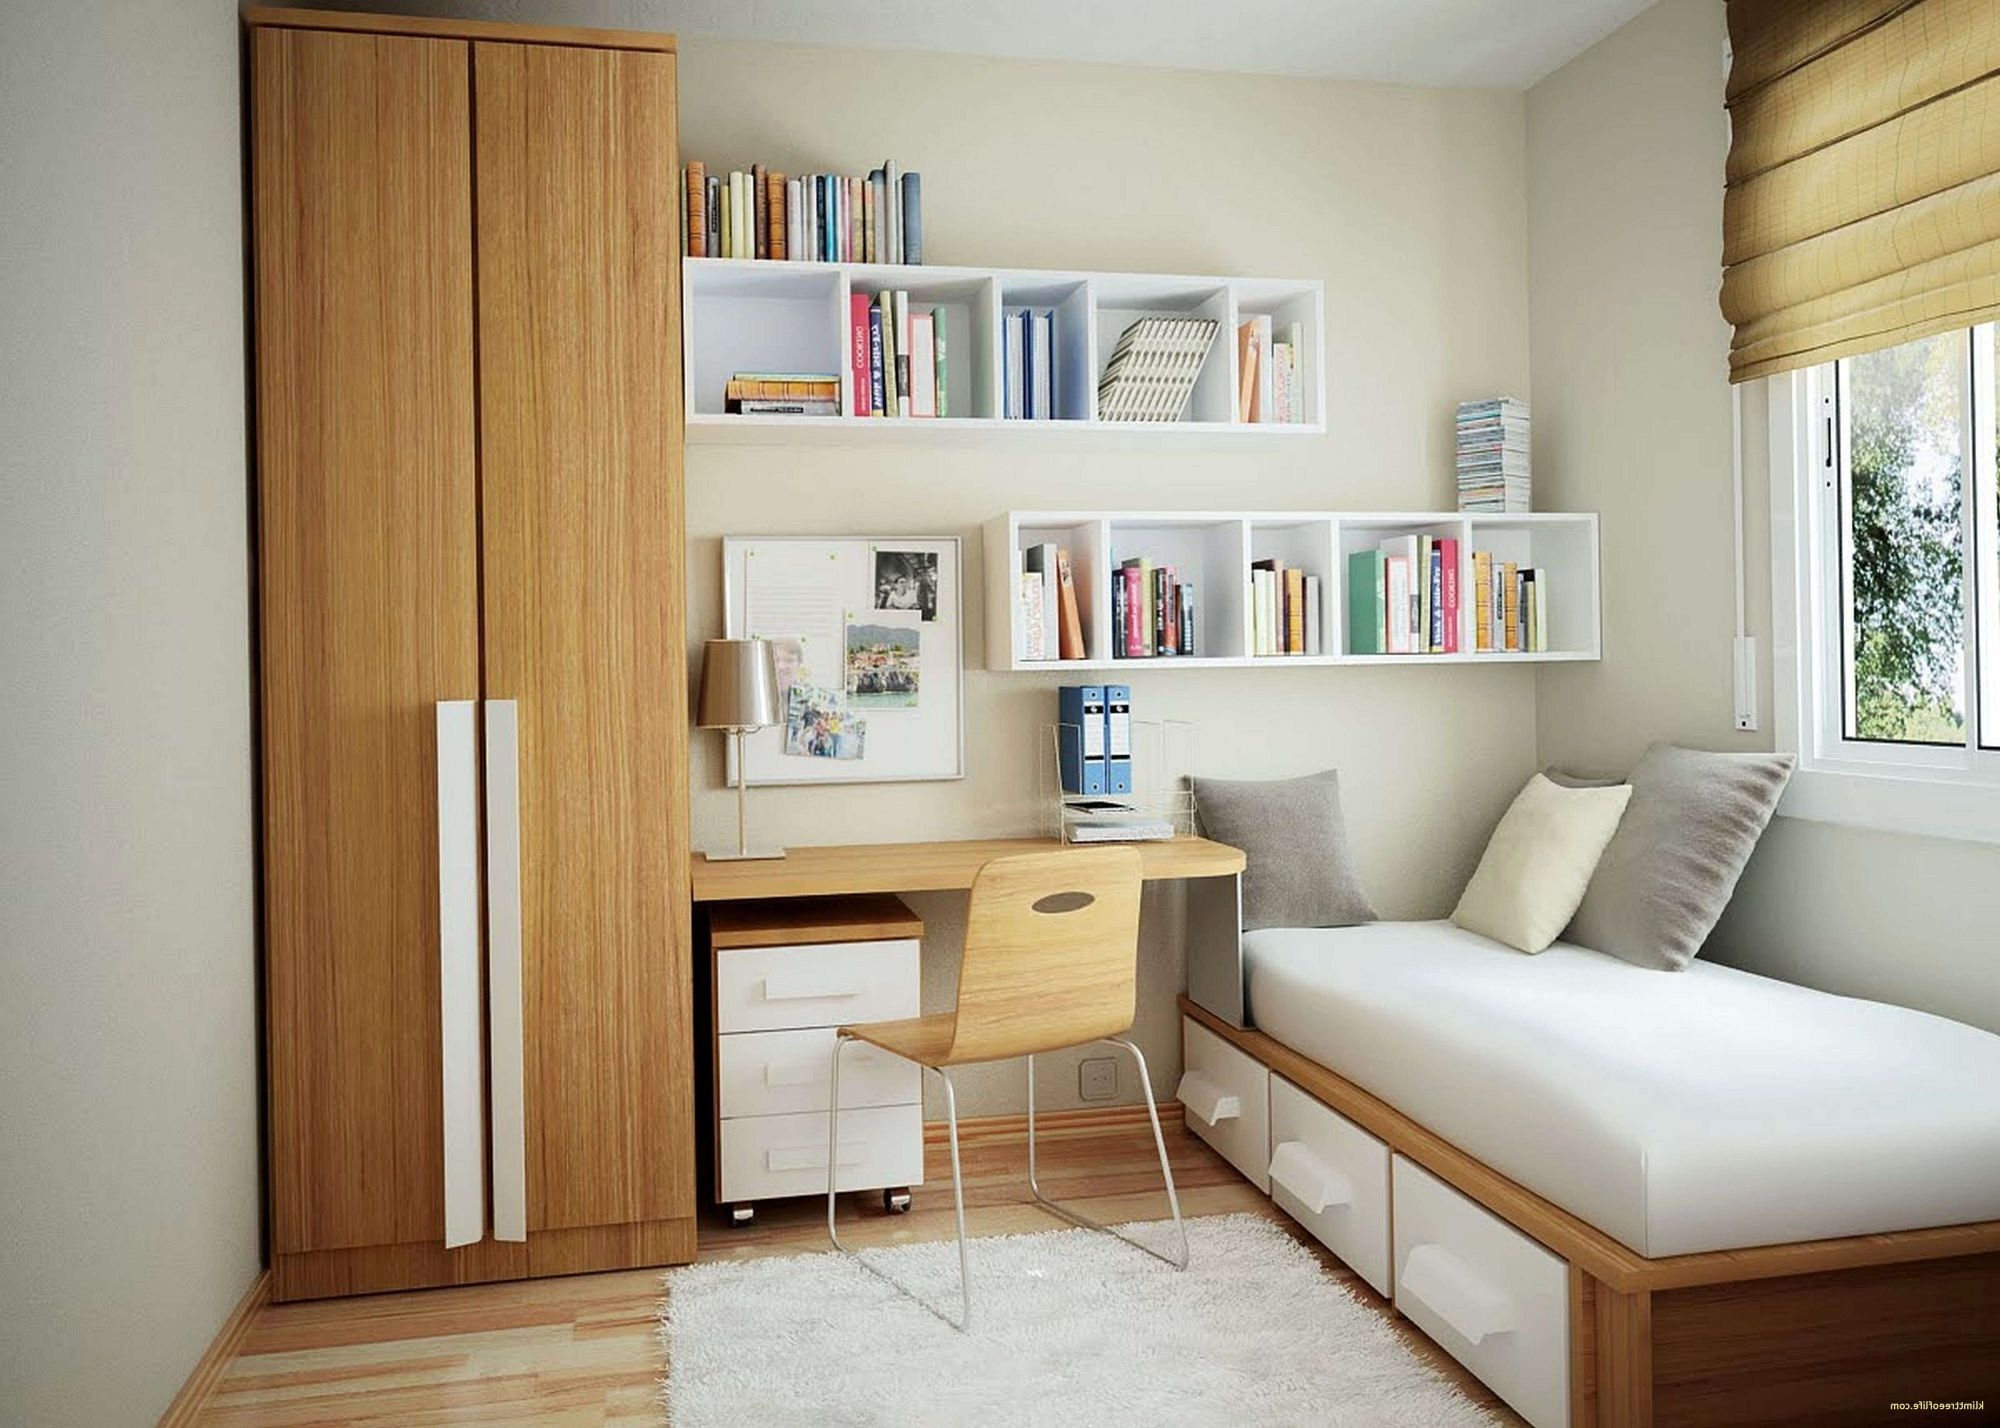 31 Lovely Bedroom Storage Ideas For Small Spaces 22 In 2021 Minimalist Bedroom Decor Small Bedroom Decor Interior Design Apartment Bedroom